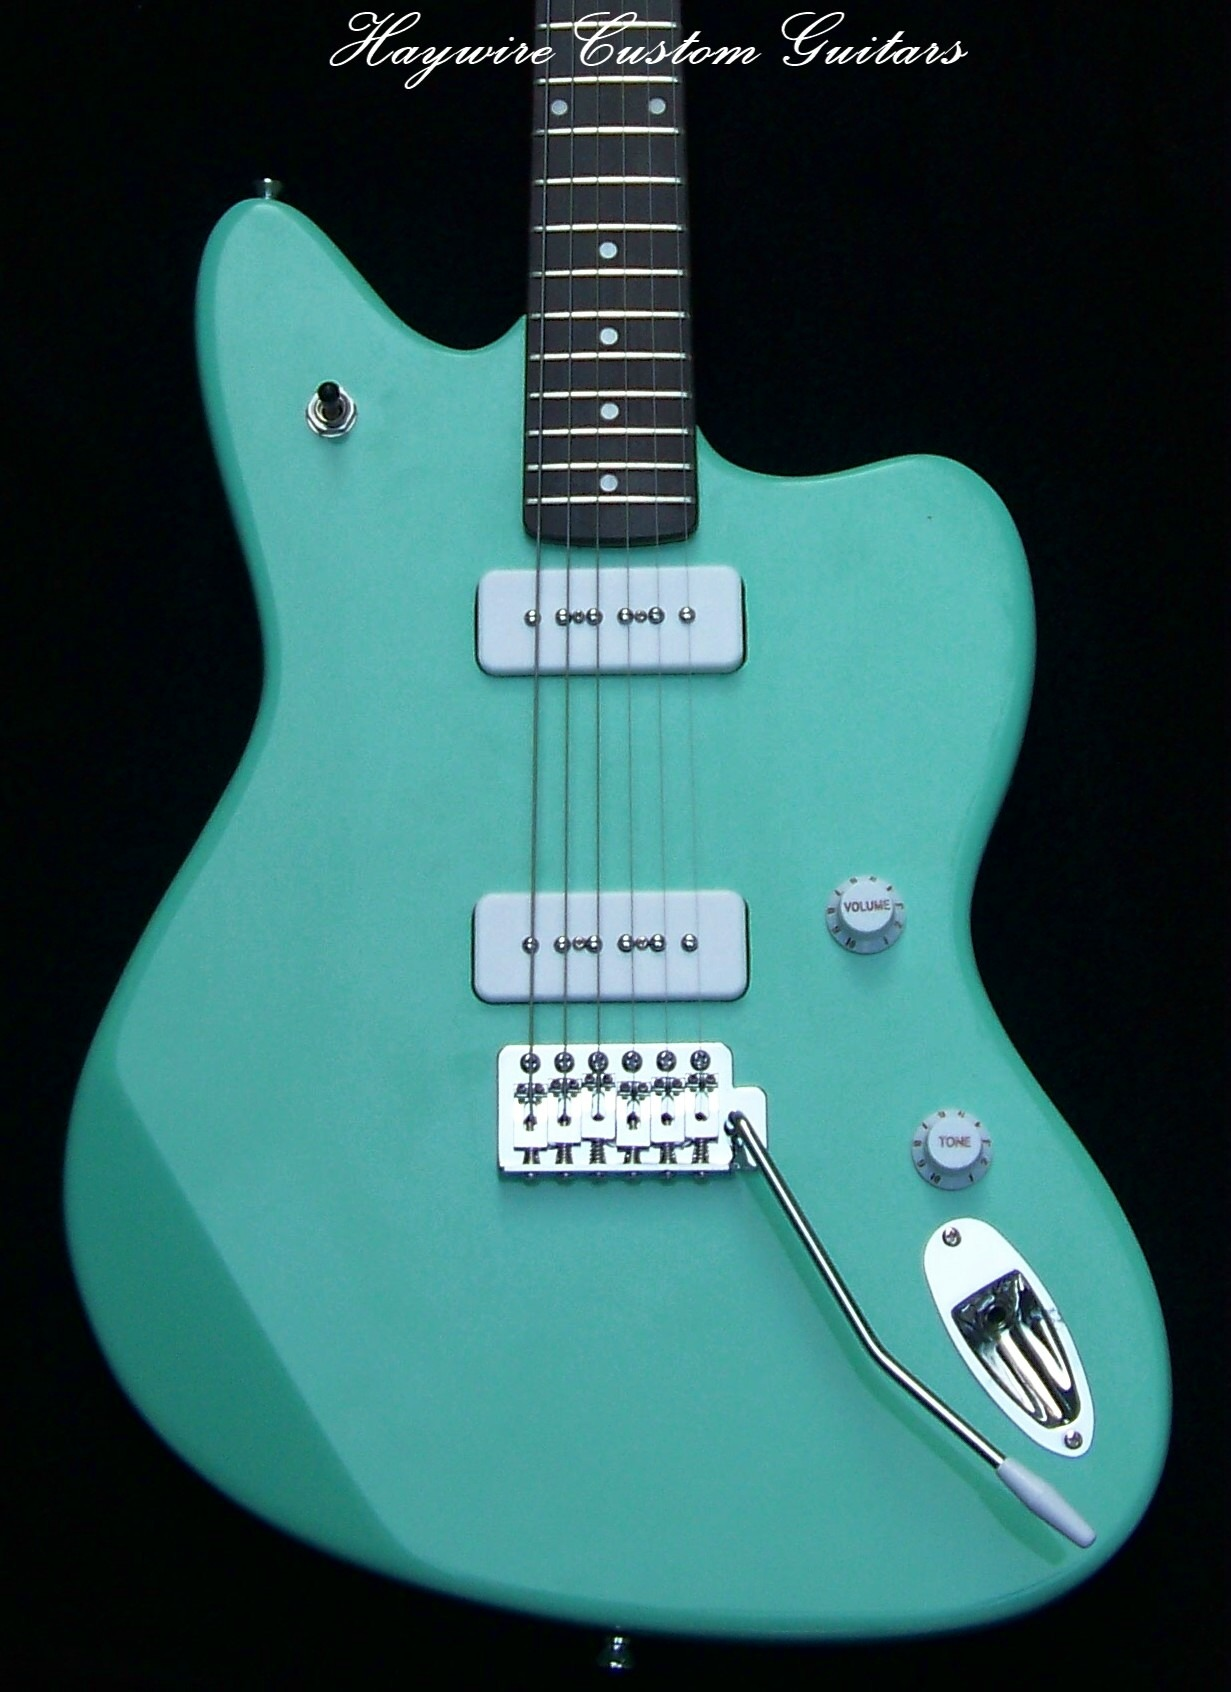 image New Haywire Custom Guitars Jazz White Pickup P-90 Surf Green 1